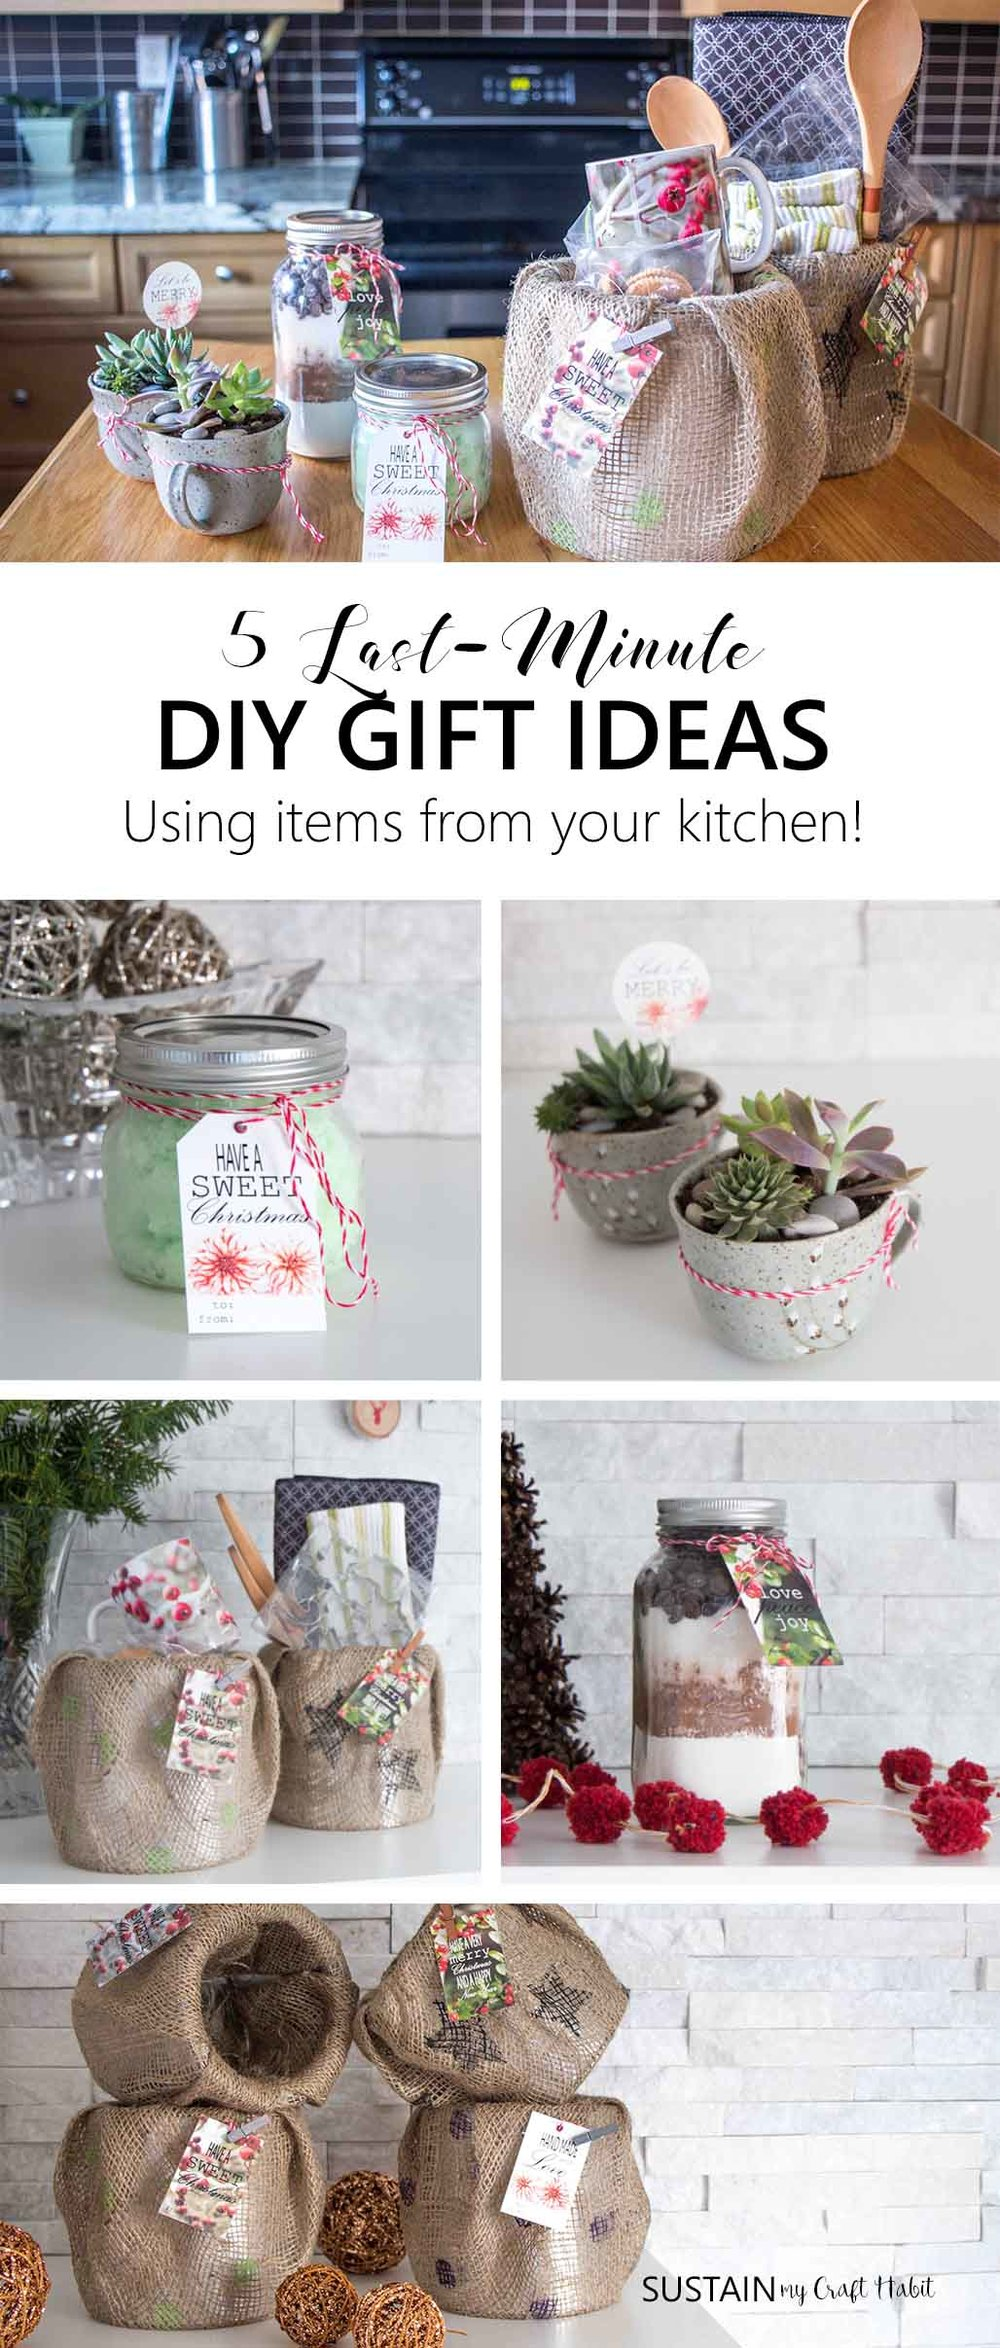 Raid your kitchen to make these quick and easy DIY handmade gift ideas. Great for hostess gifts, stocking stuffers, gift toppers and more. Video included.